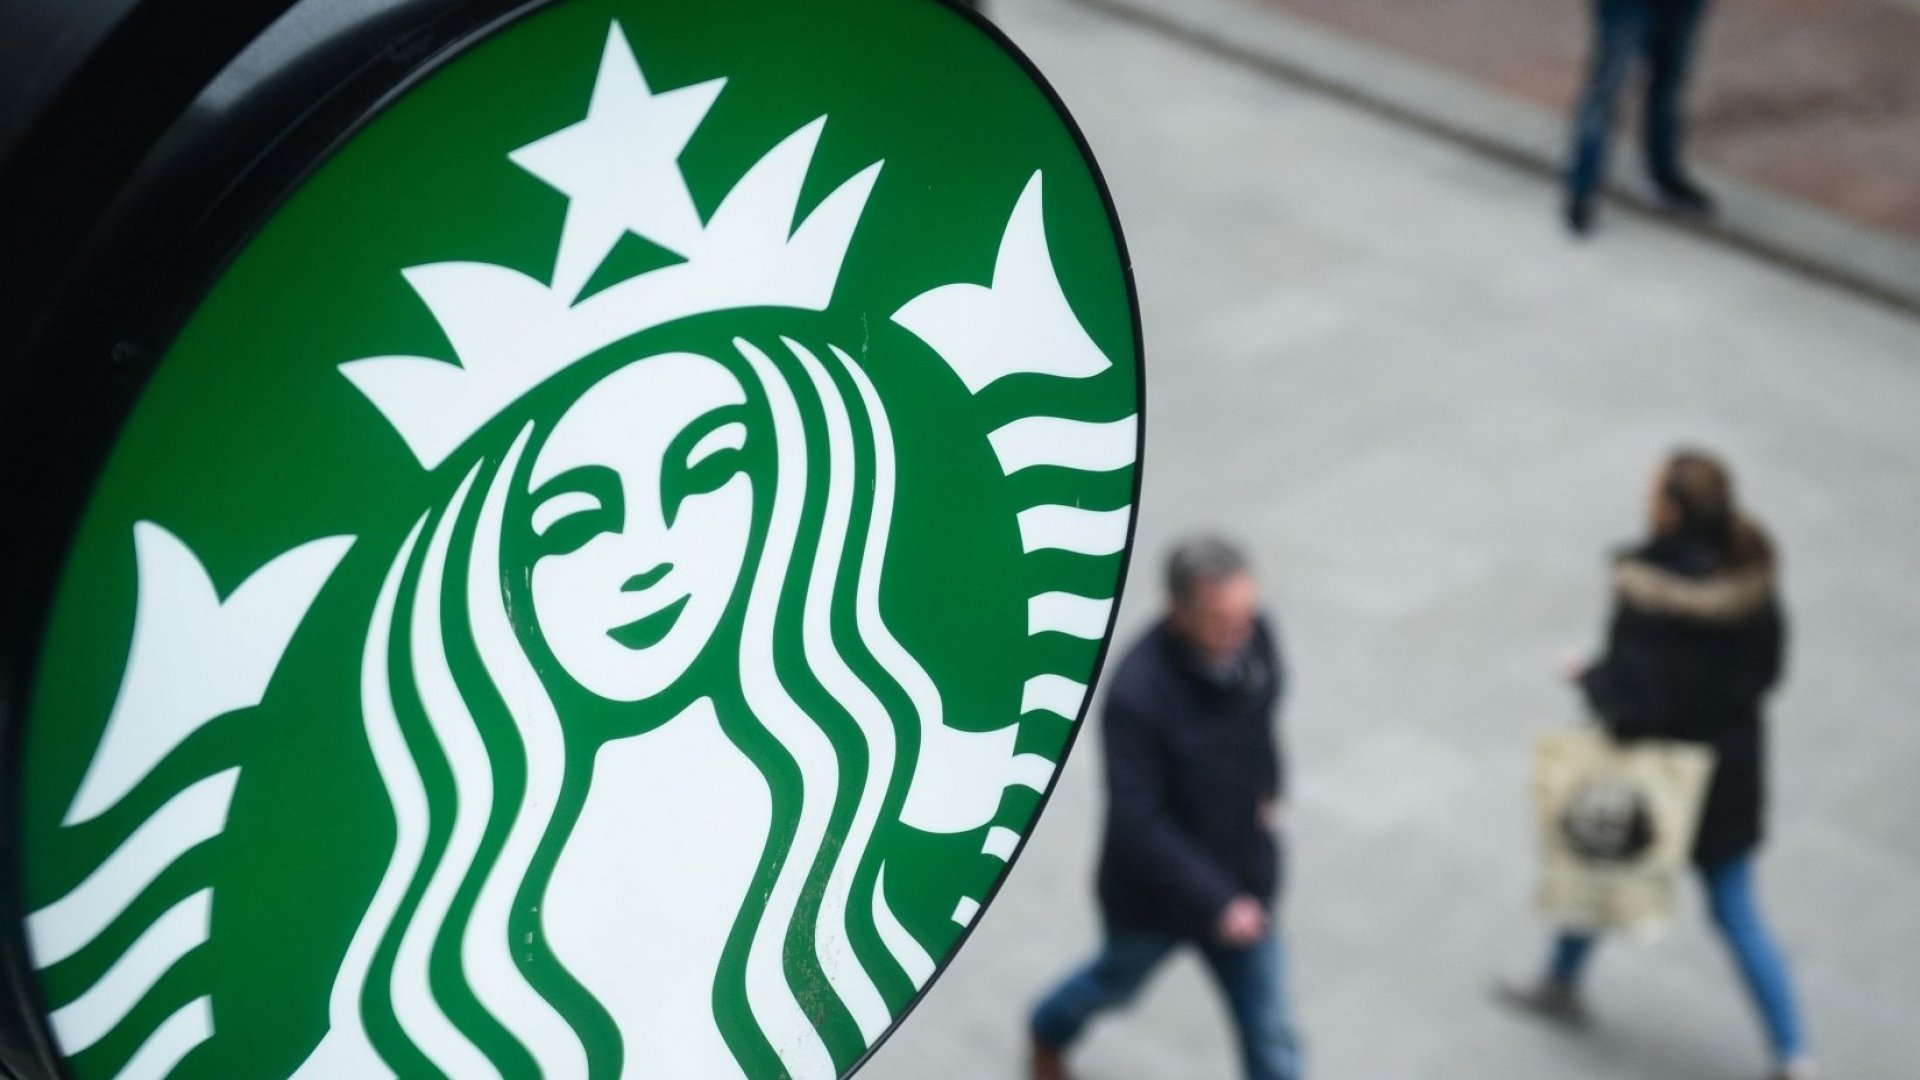 Starbucks 'Racial Bias Training' Day Is a Valuable Lesson About What Is Wrong With Corporate Boards